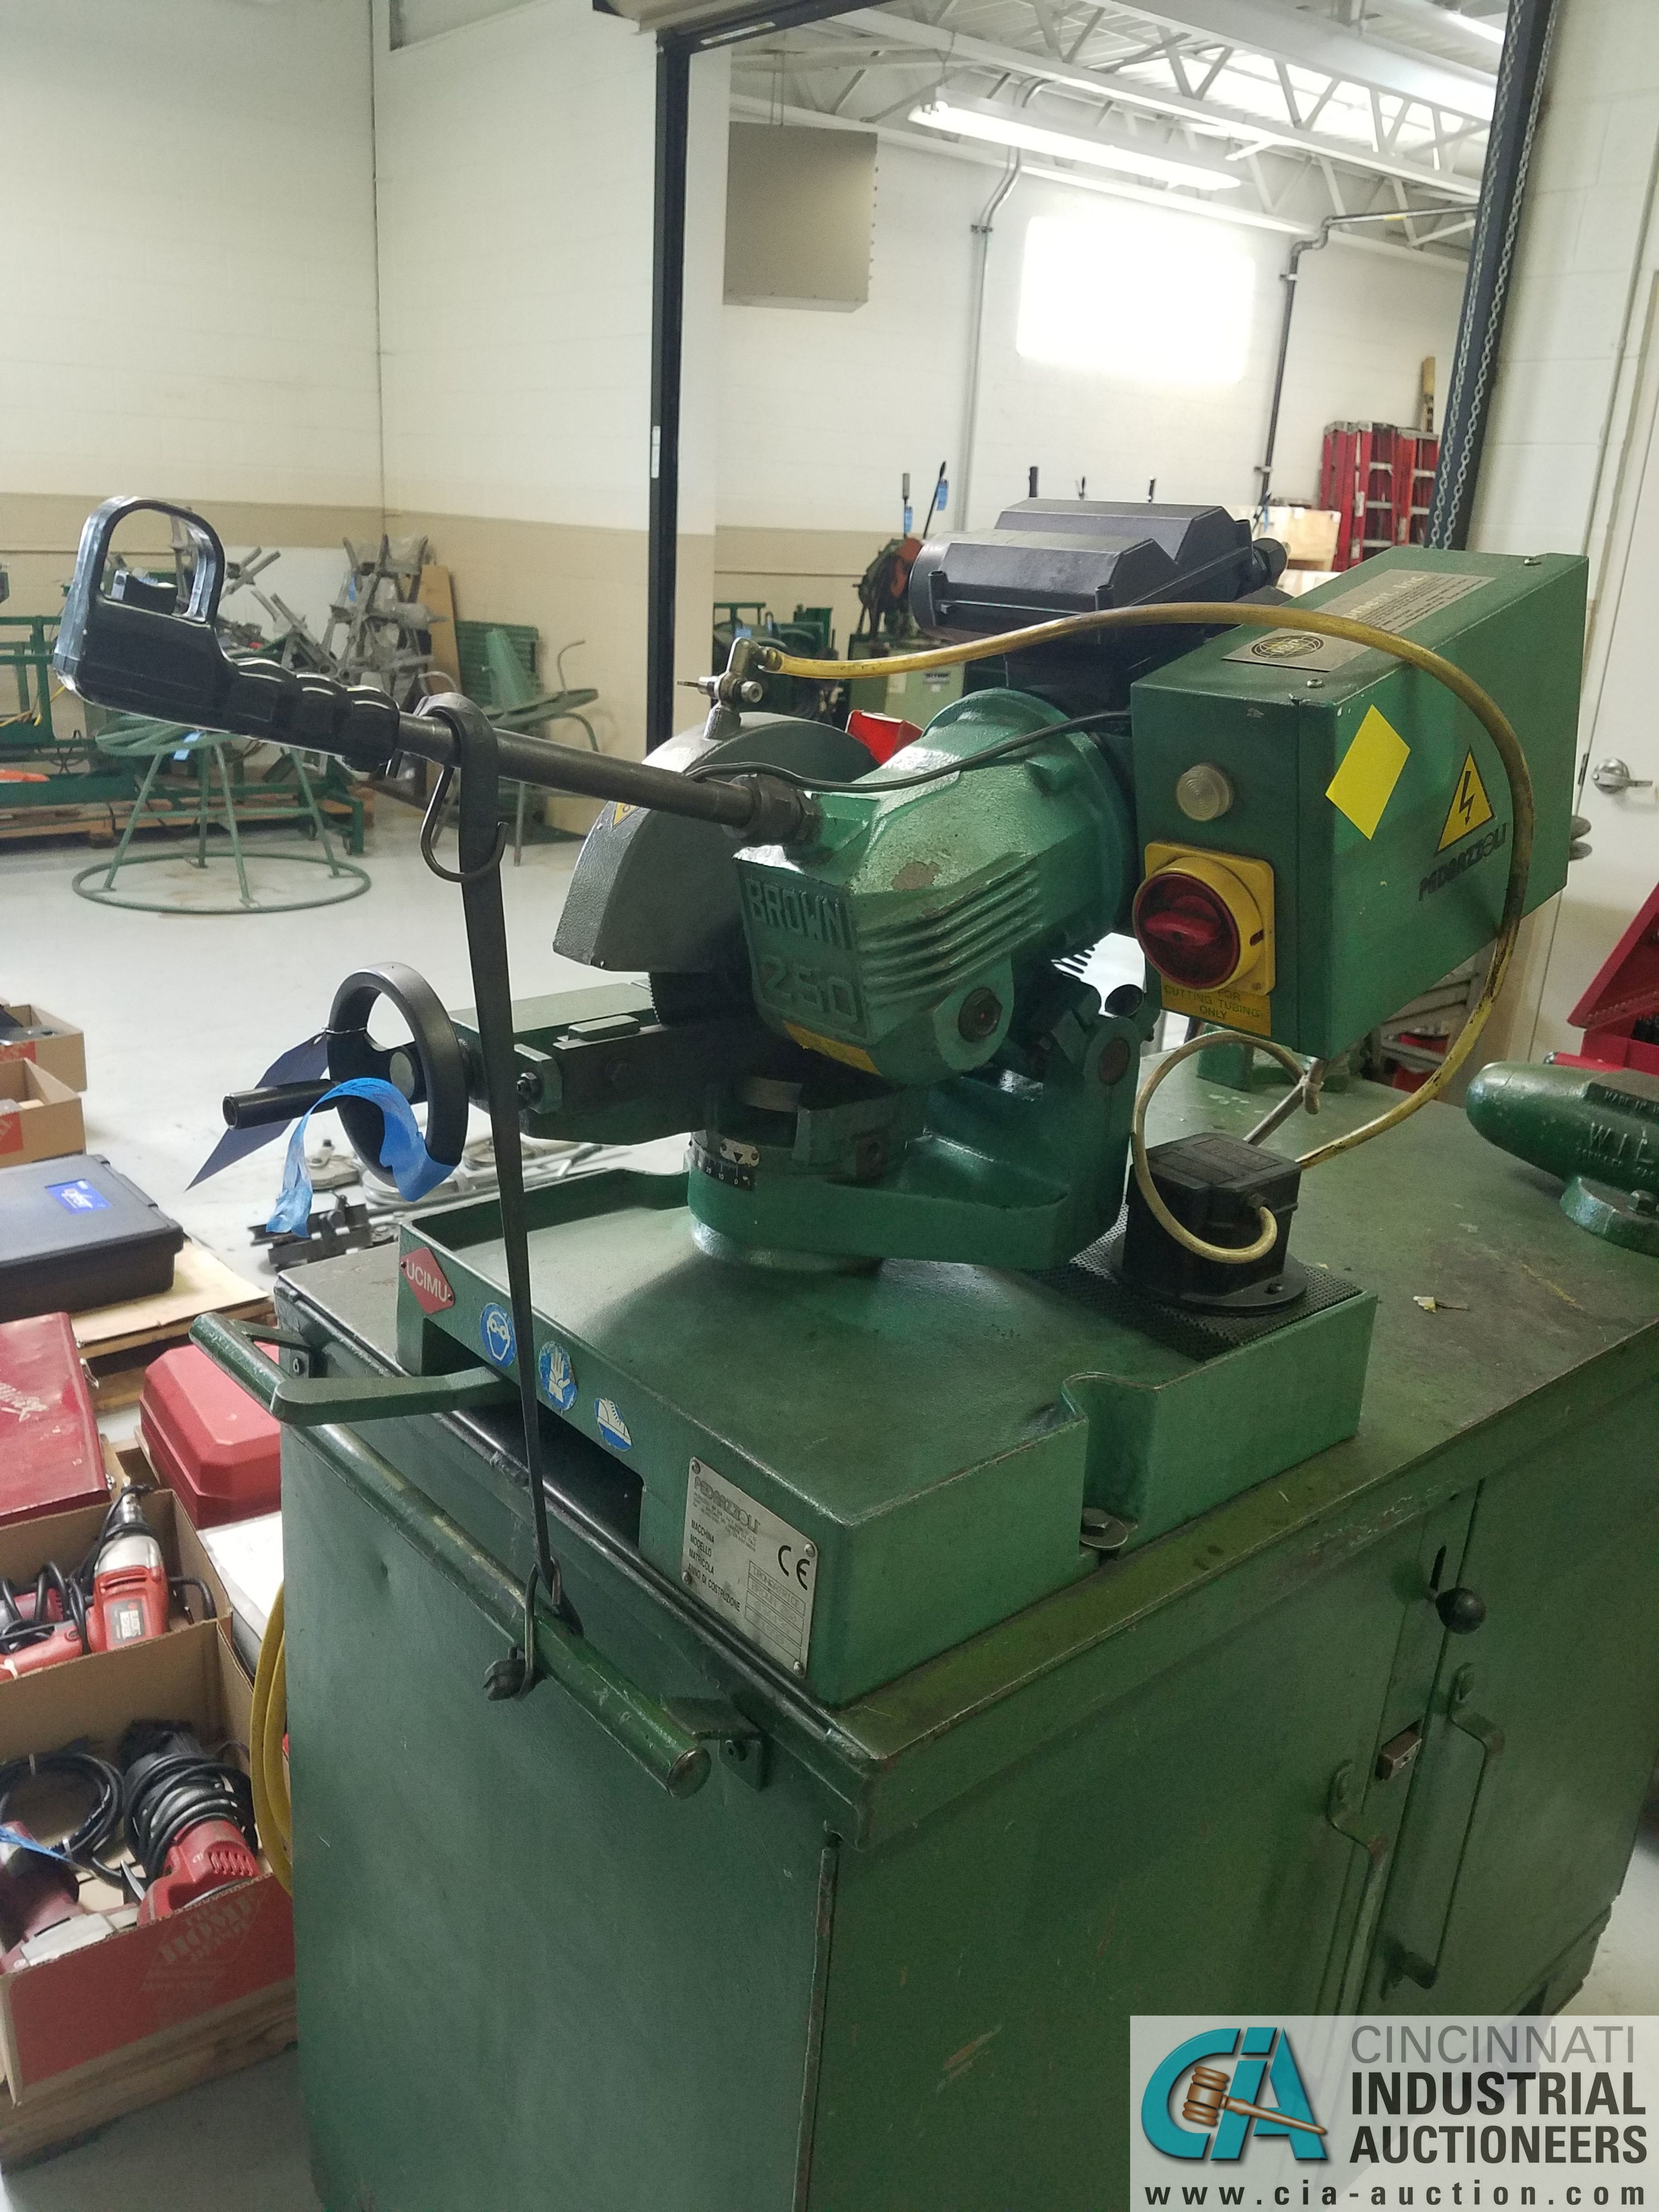 BROWN MODEL 250 TABLE MOUNTED SAW; S/N 034436, MOUNTED ON PORTABLE JOBBOX WITH 4-1/2 BENCH VISE - Image 2 of 6